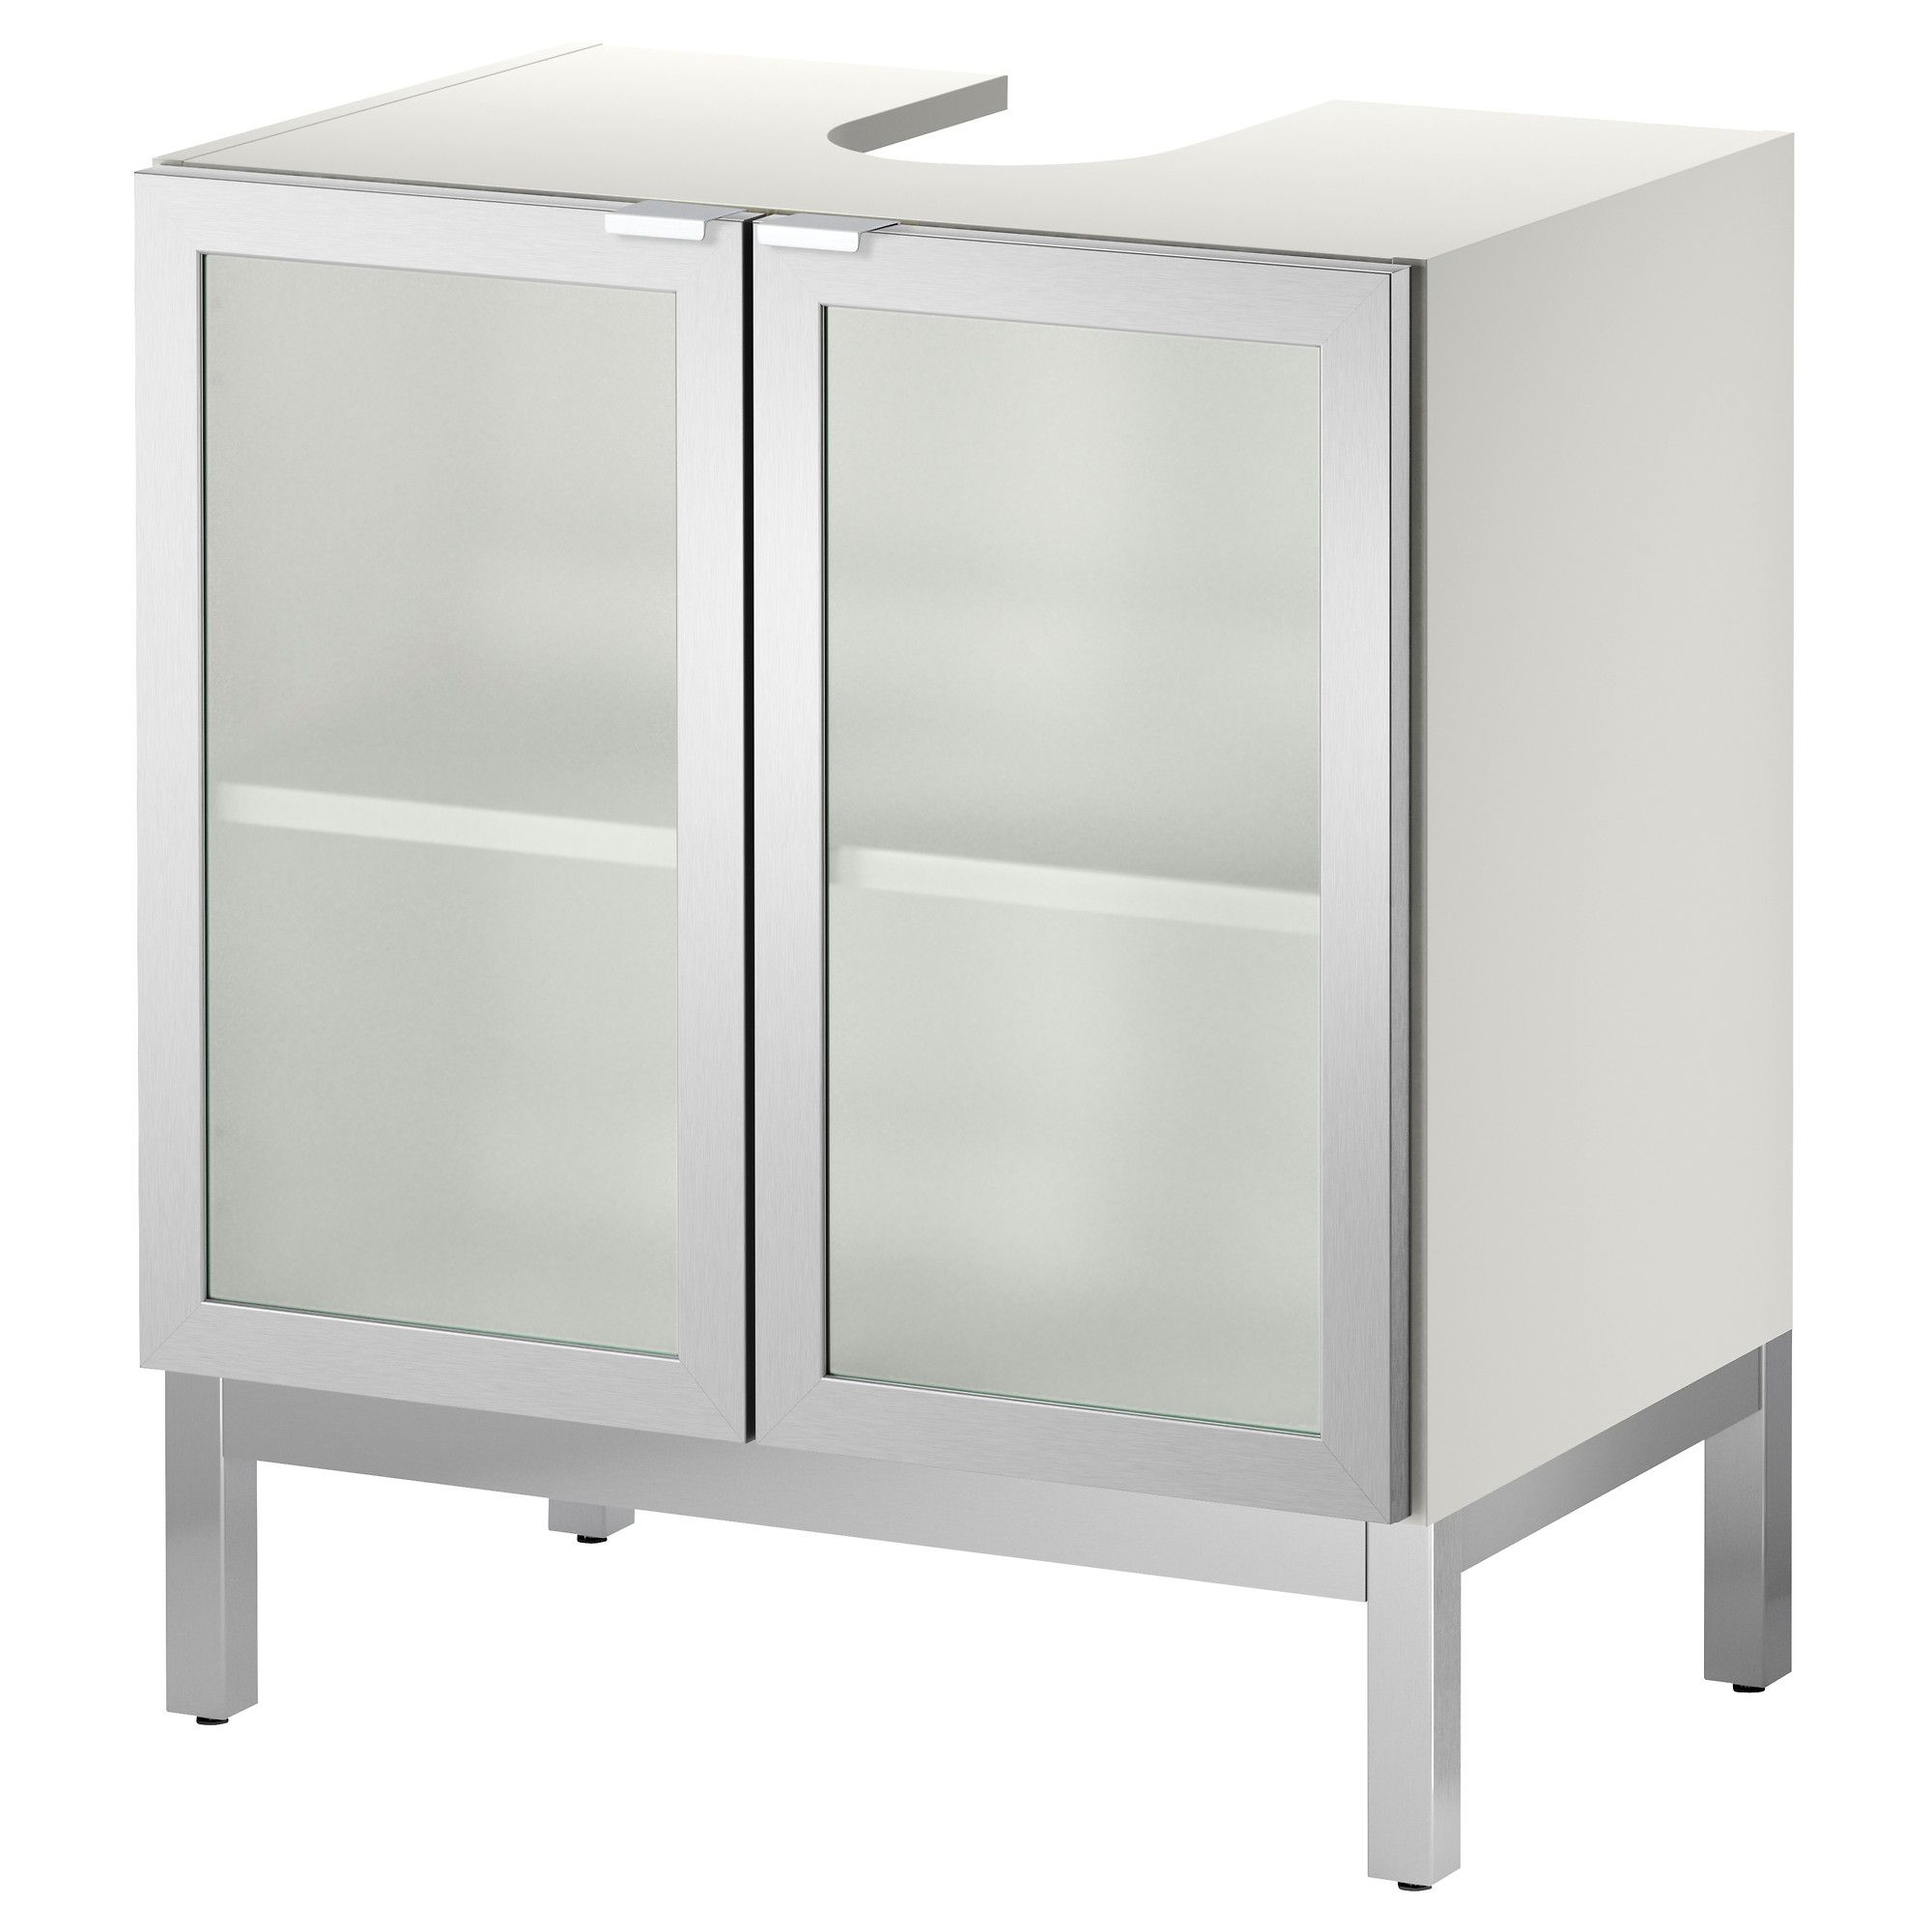 Lill Ngen Sink Base Cabinet With 2 Door Aluminum Ikea To Create Storage Around Pedestal